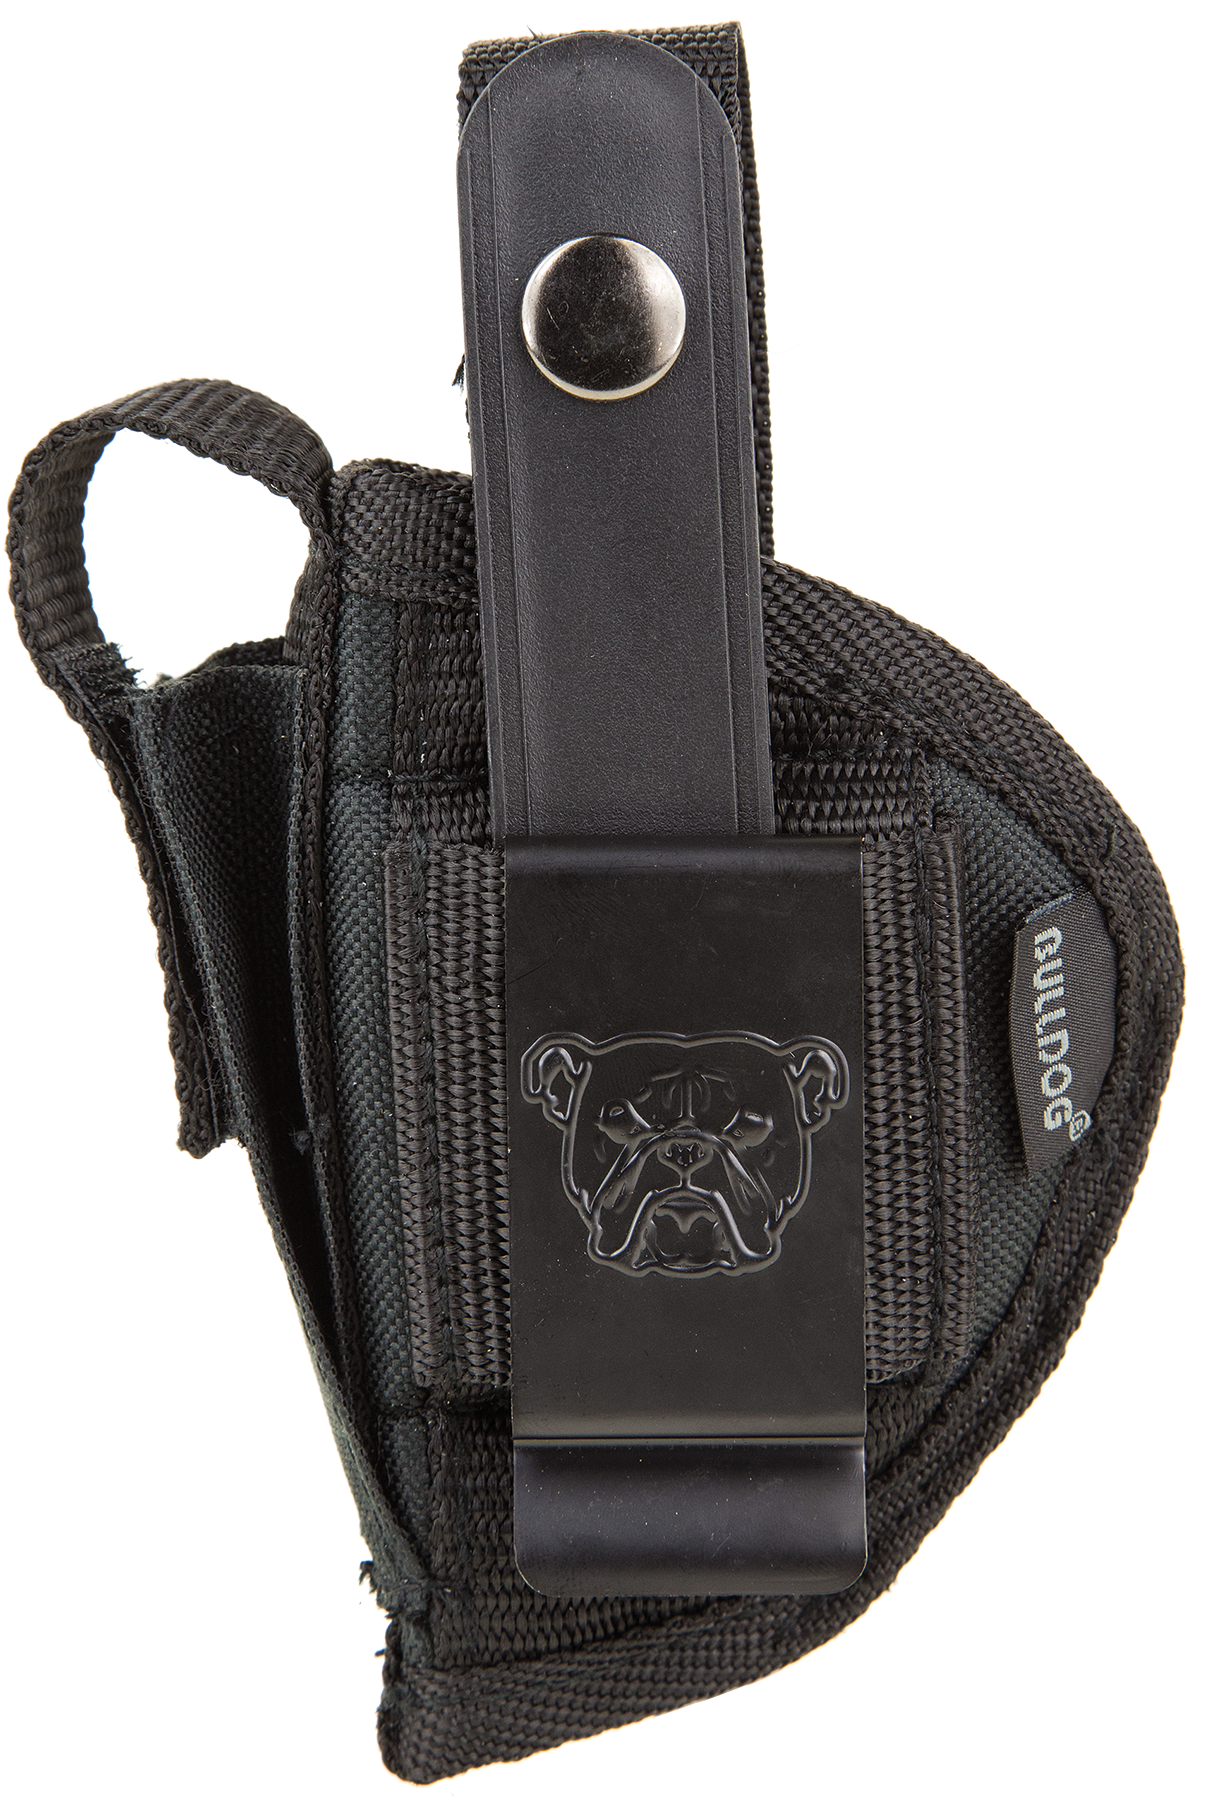 Bulldog® Extreme Holster - Compact Pistol - Size 3 - Black